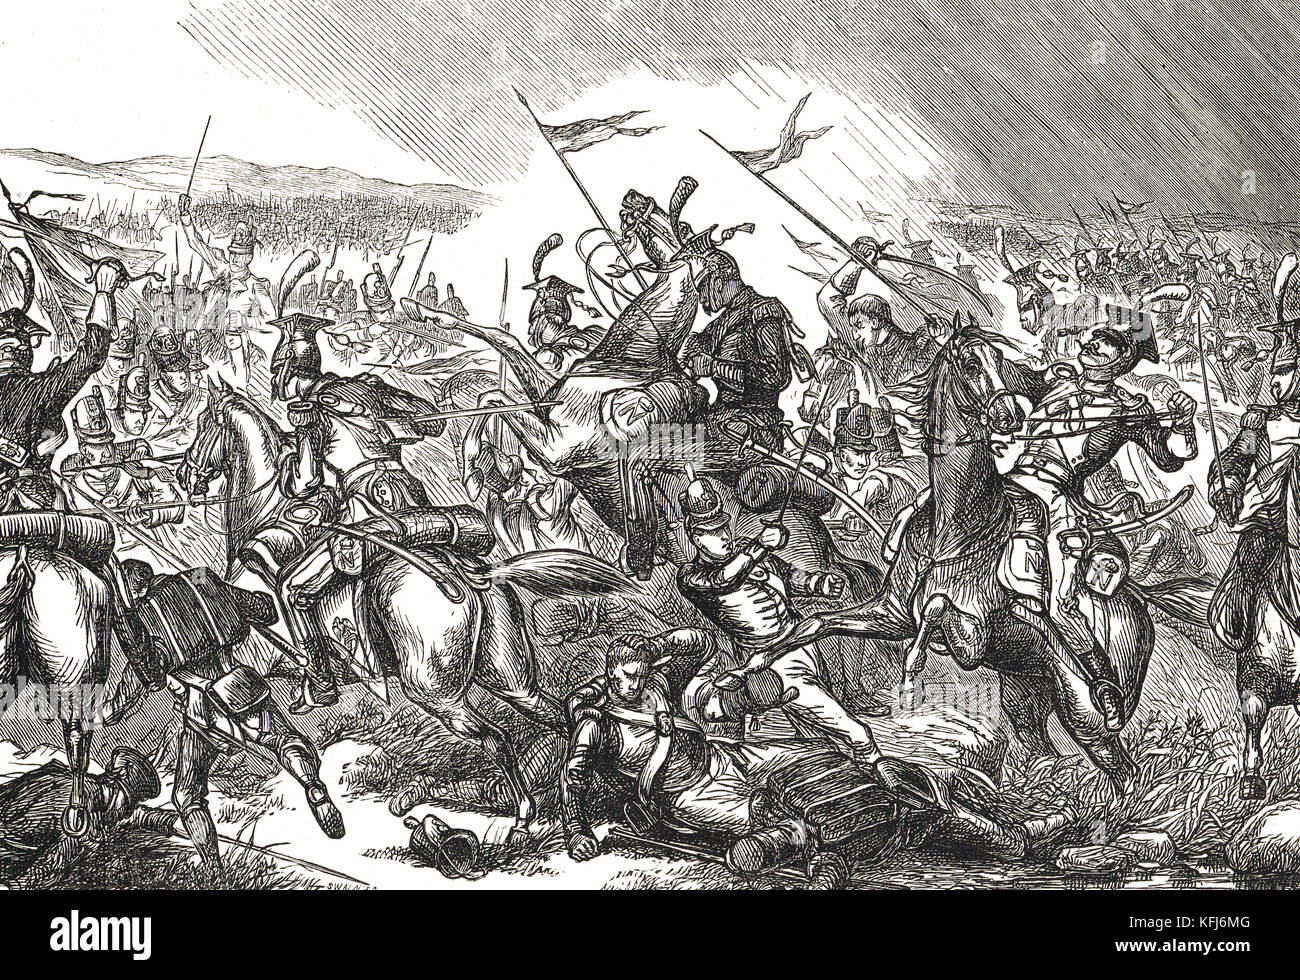 The Battle of Albuera, Spain, 16 May 1811 - Stock Image